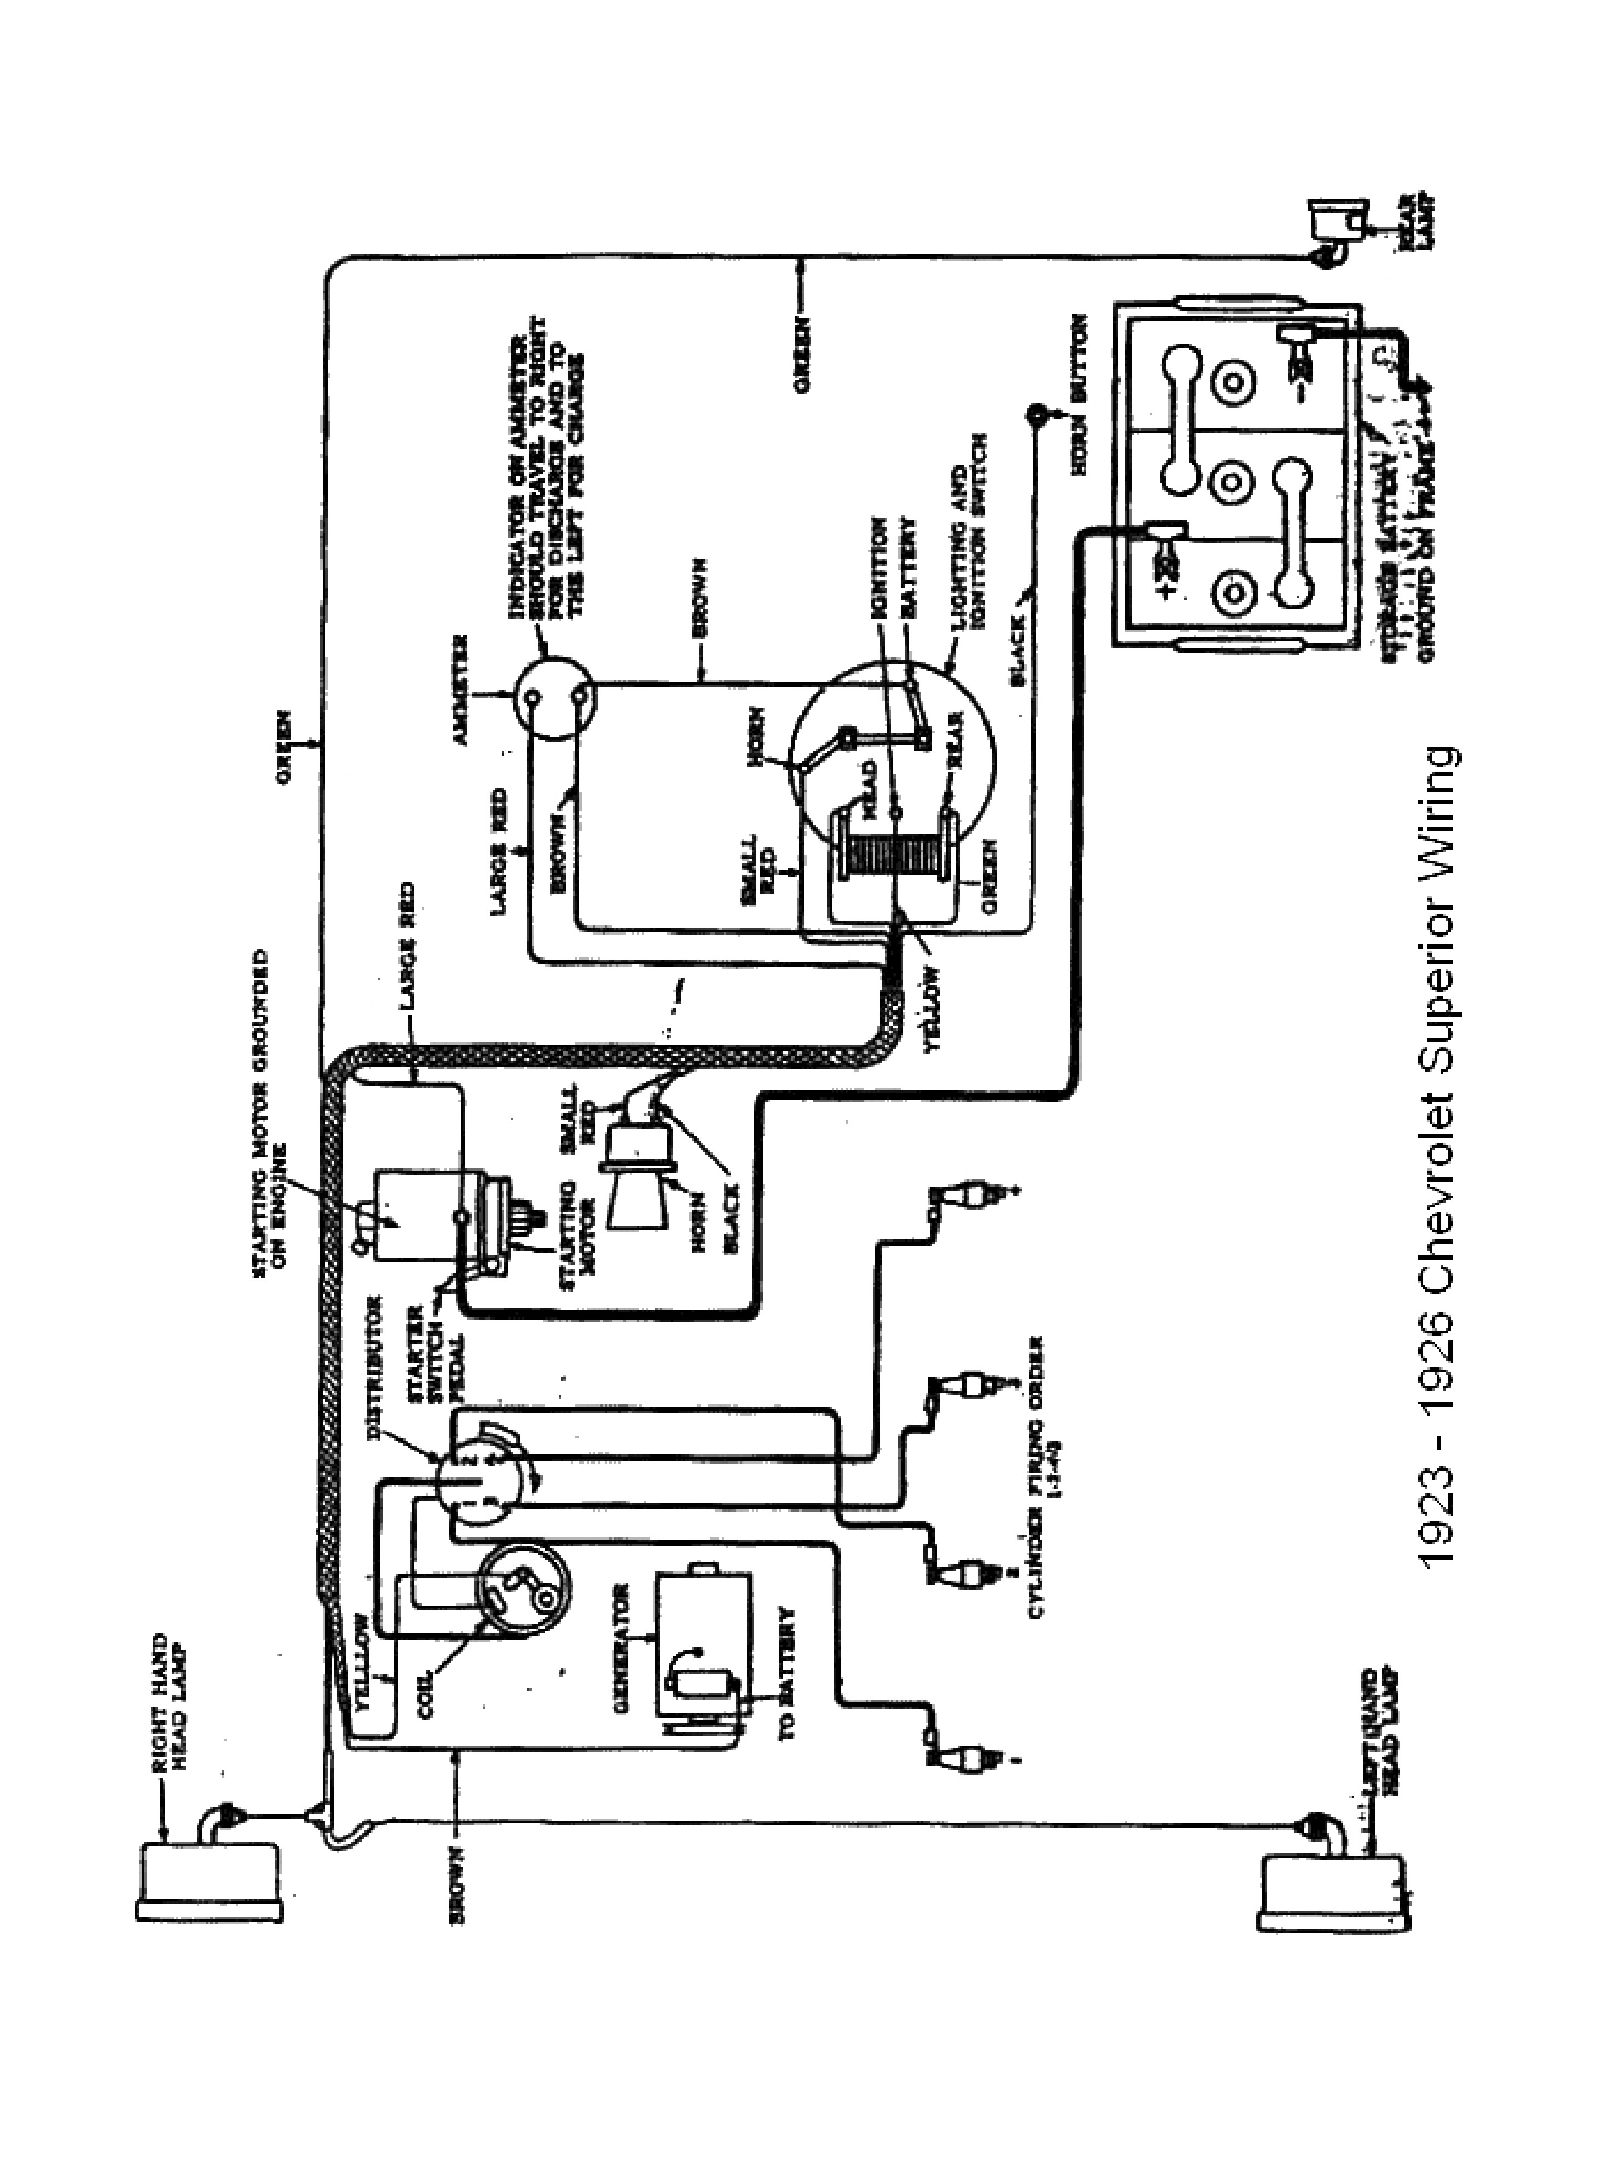 1955 chevy headlight switch wiring diagram 2008 ford focus stereo car database diagrams ignition